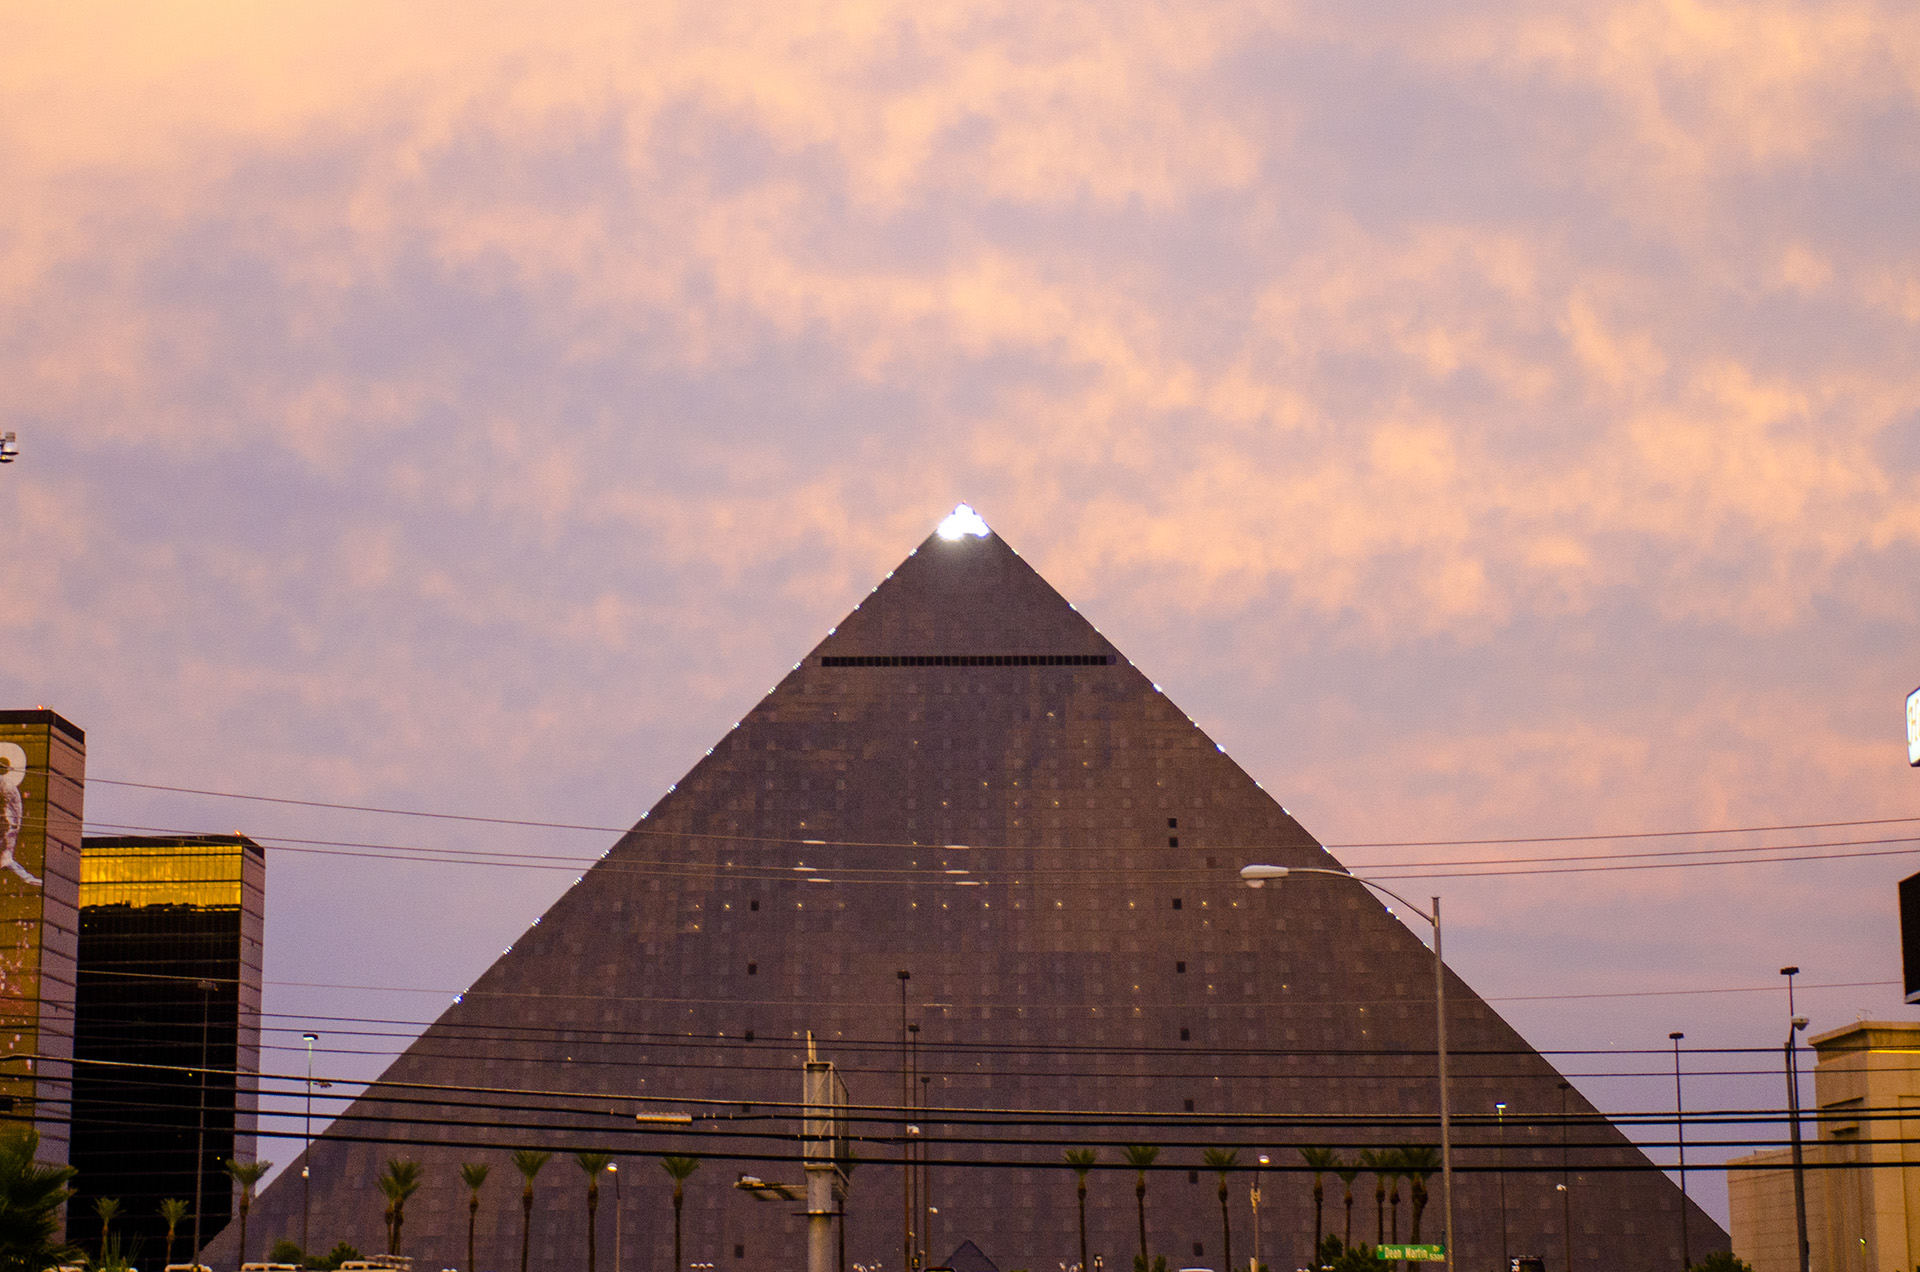 A casino and hotel in Las Vegas called The Luxor